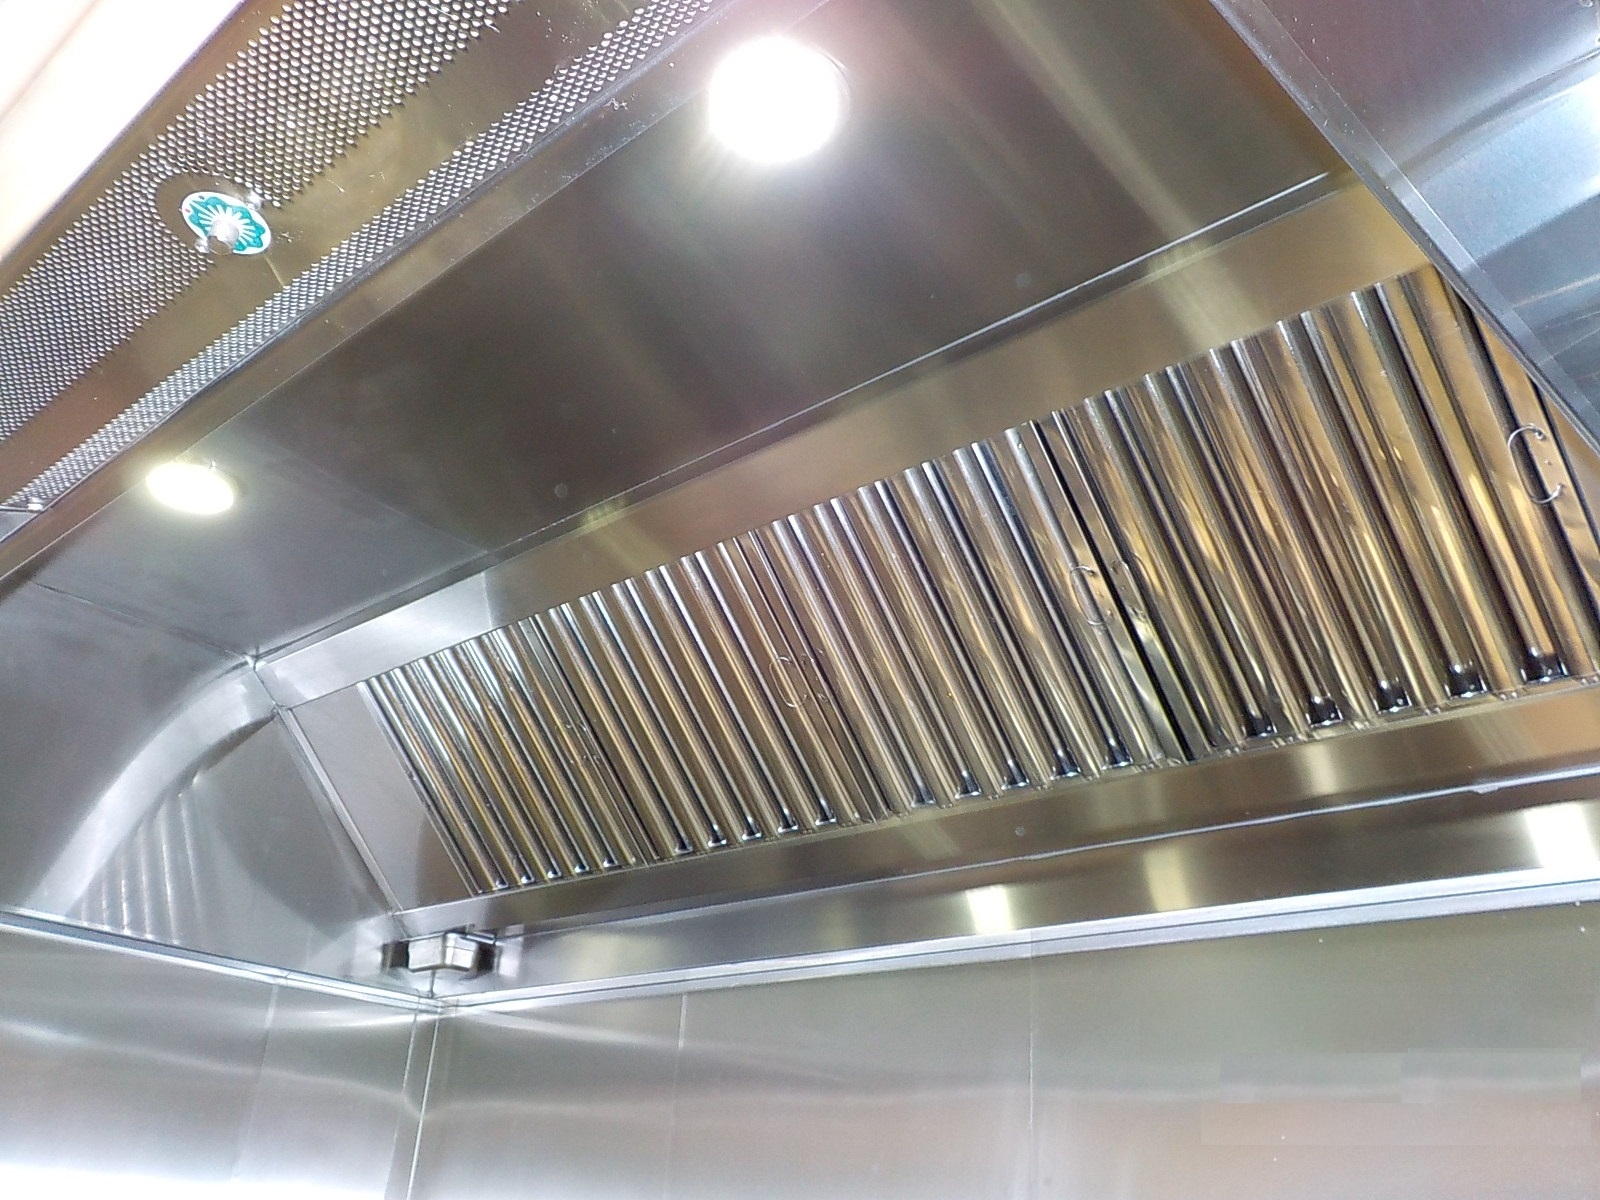 commercial kitchen cleaning services best sinks pressure kleen | attention restaurant owners: the ...